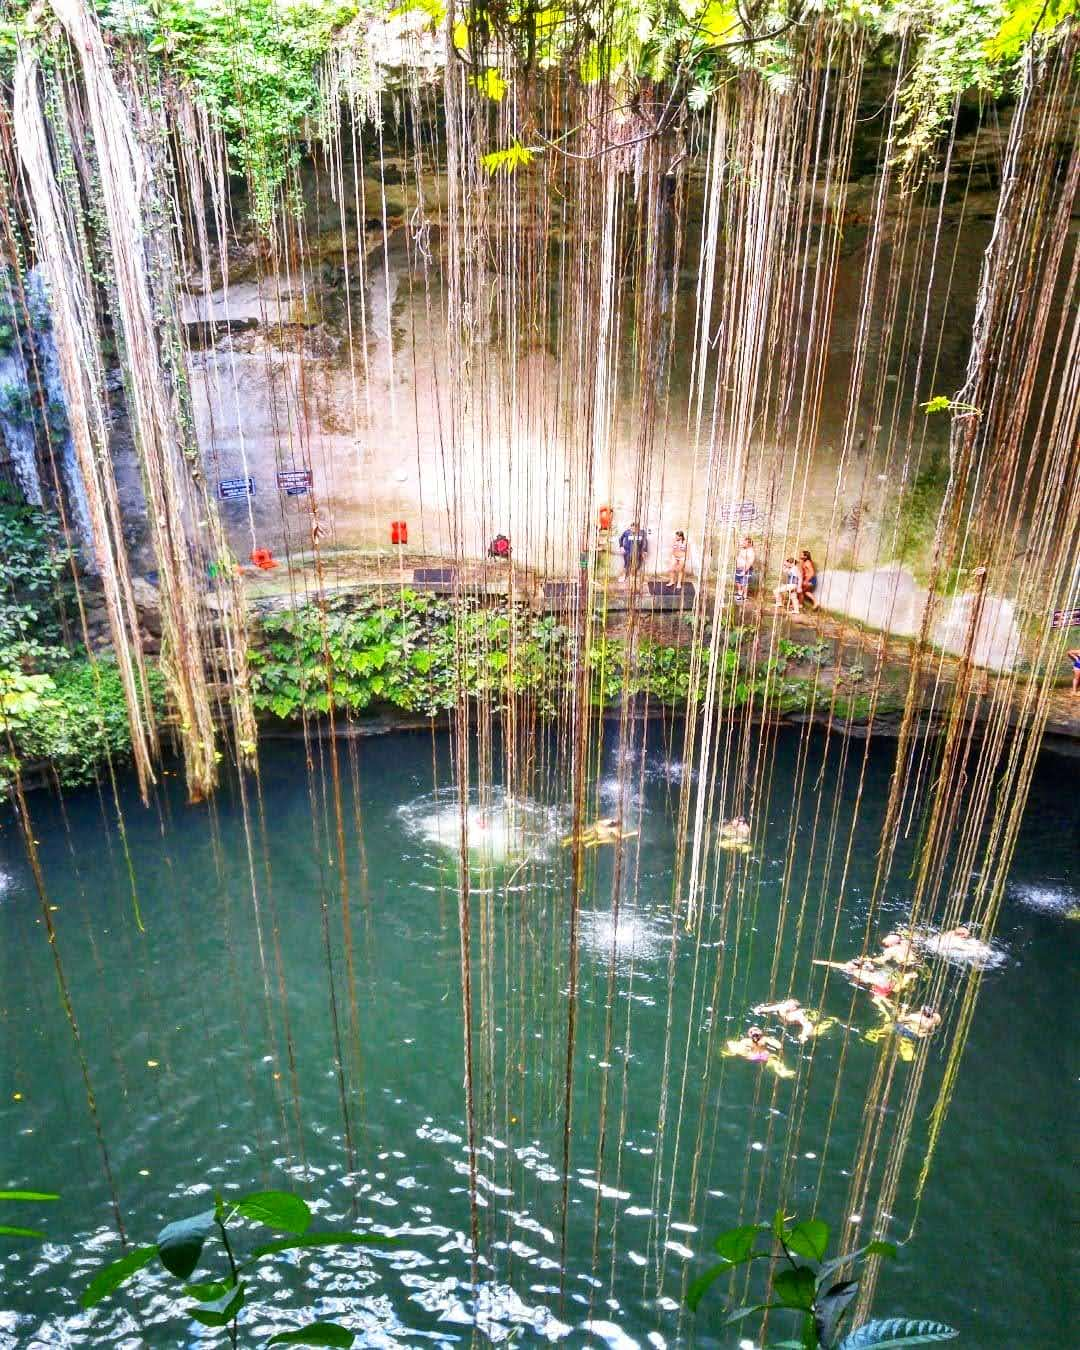 SO THIS IS A CENOTE?!? WHY YOU SHOULD VISIT VALLADOLID